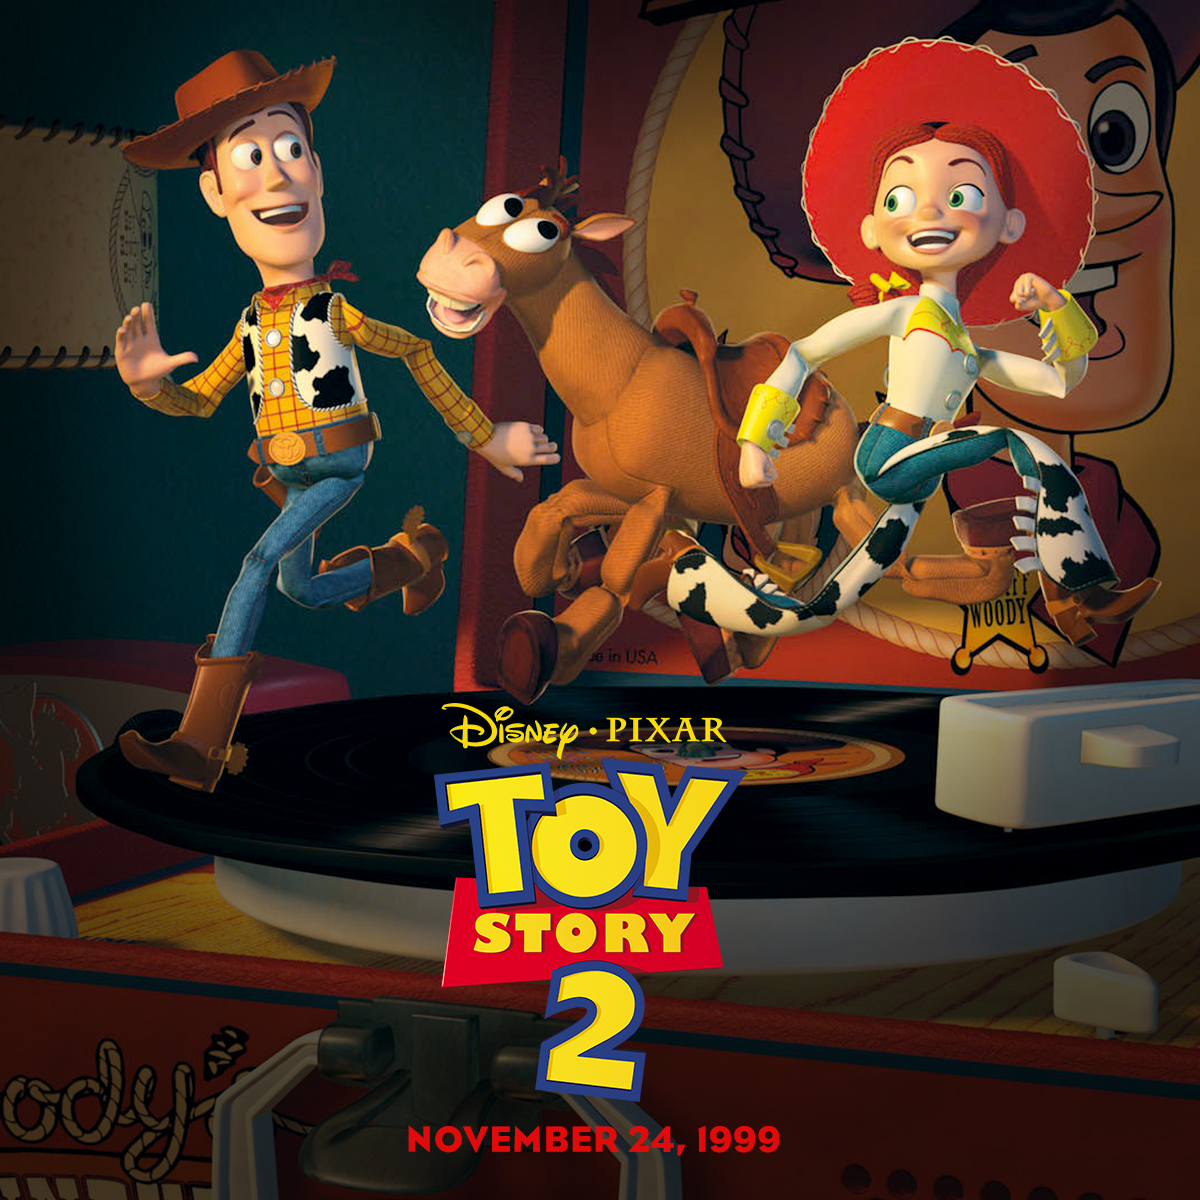 On this day in 1999, Toy Story 2 made its big screen debut! What's your favorite line from this iconic sequel?